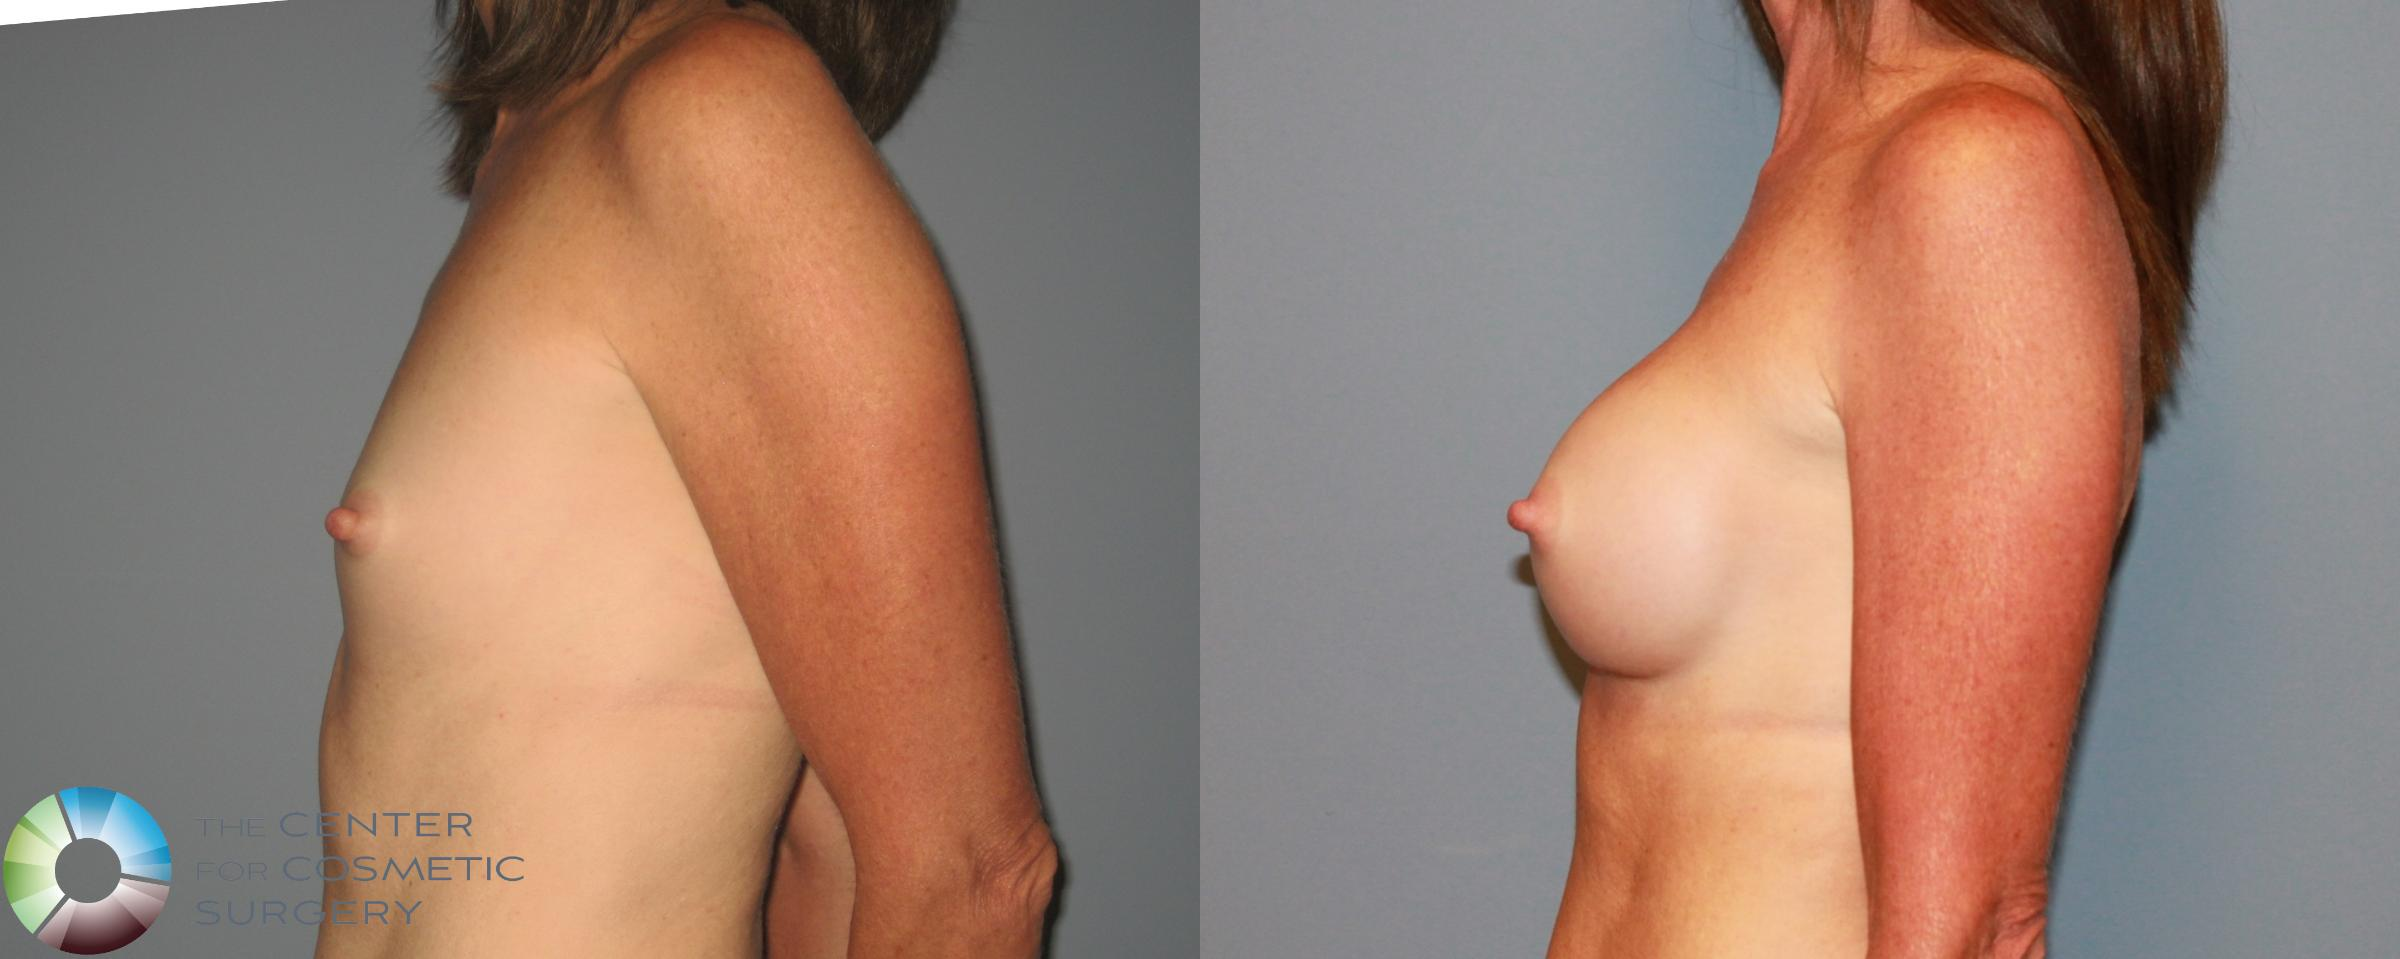 Breast Augmentation Case 471 Before & After View #3 | Golden, CO | The Center for Cosmetic Surgery